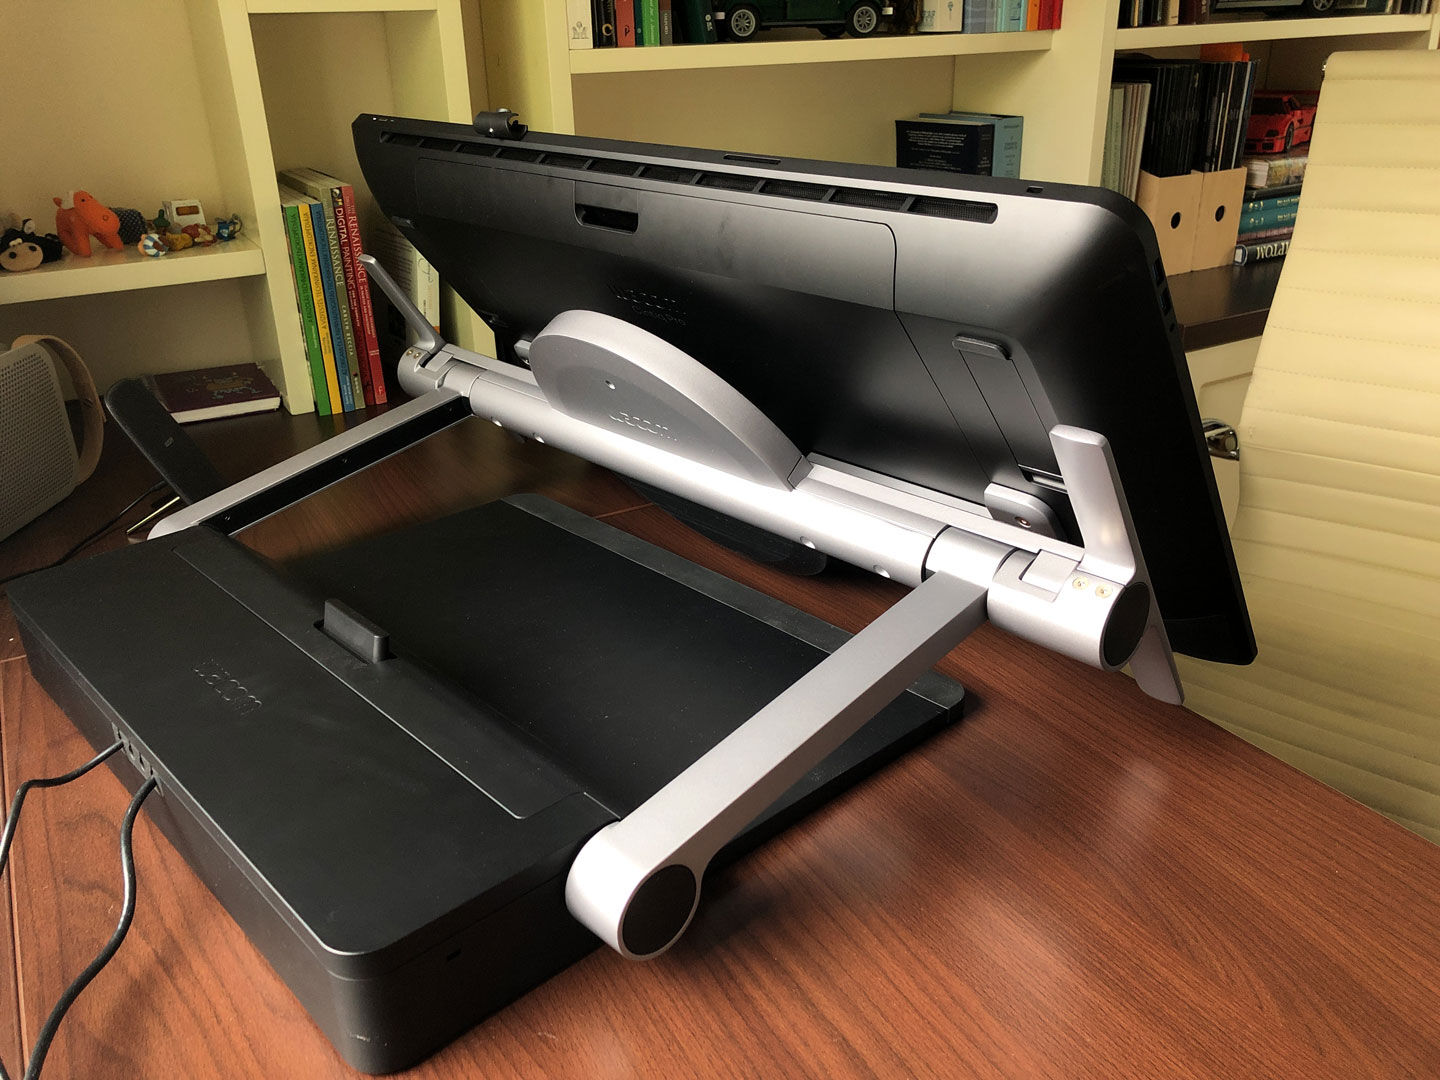 Positioning the XP-PEN Artist Pro 24 on your desk